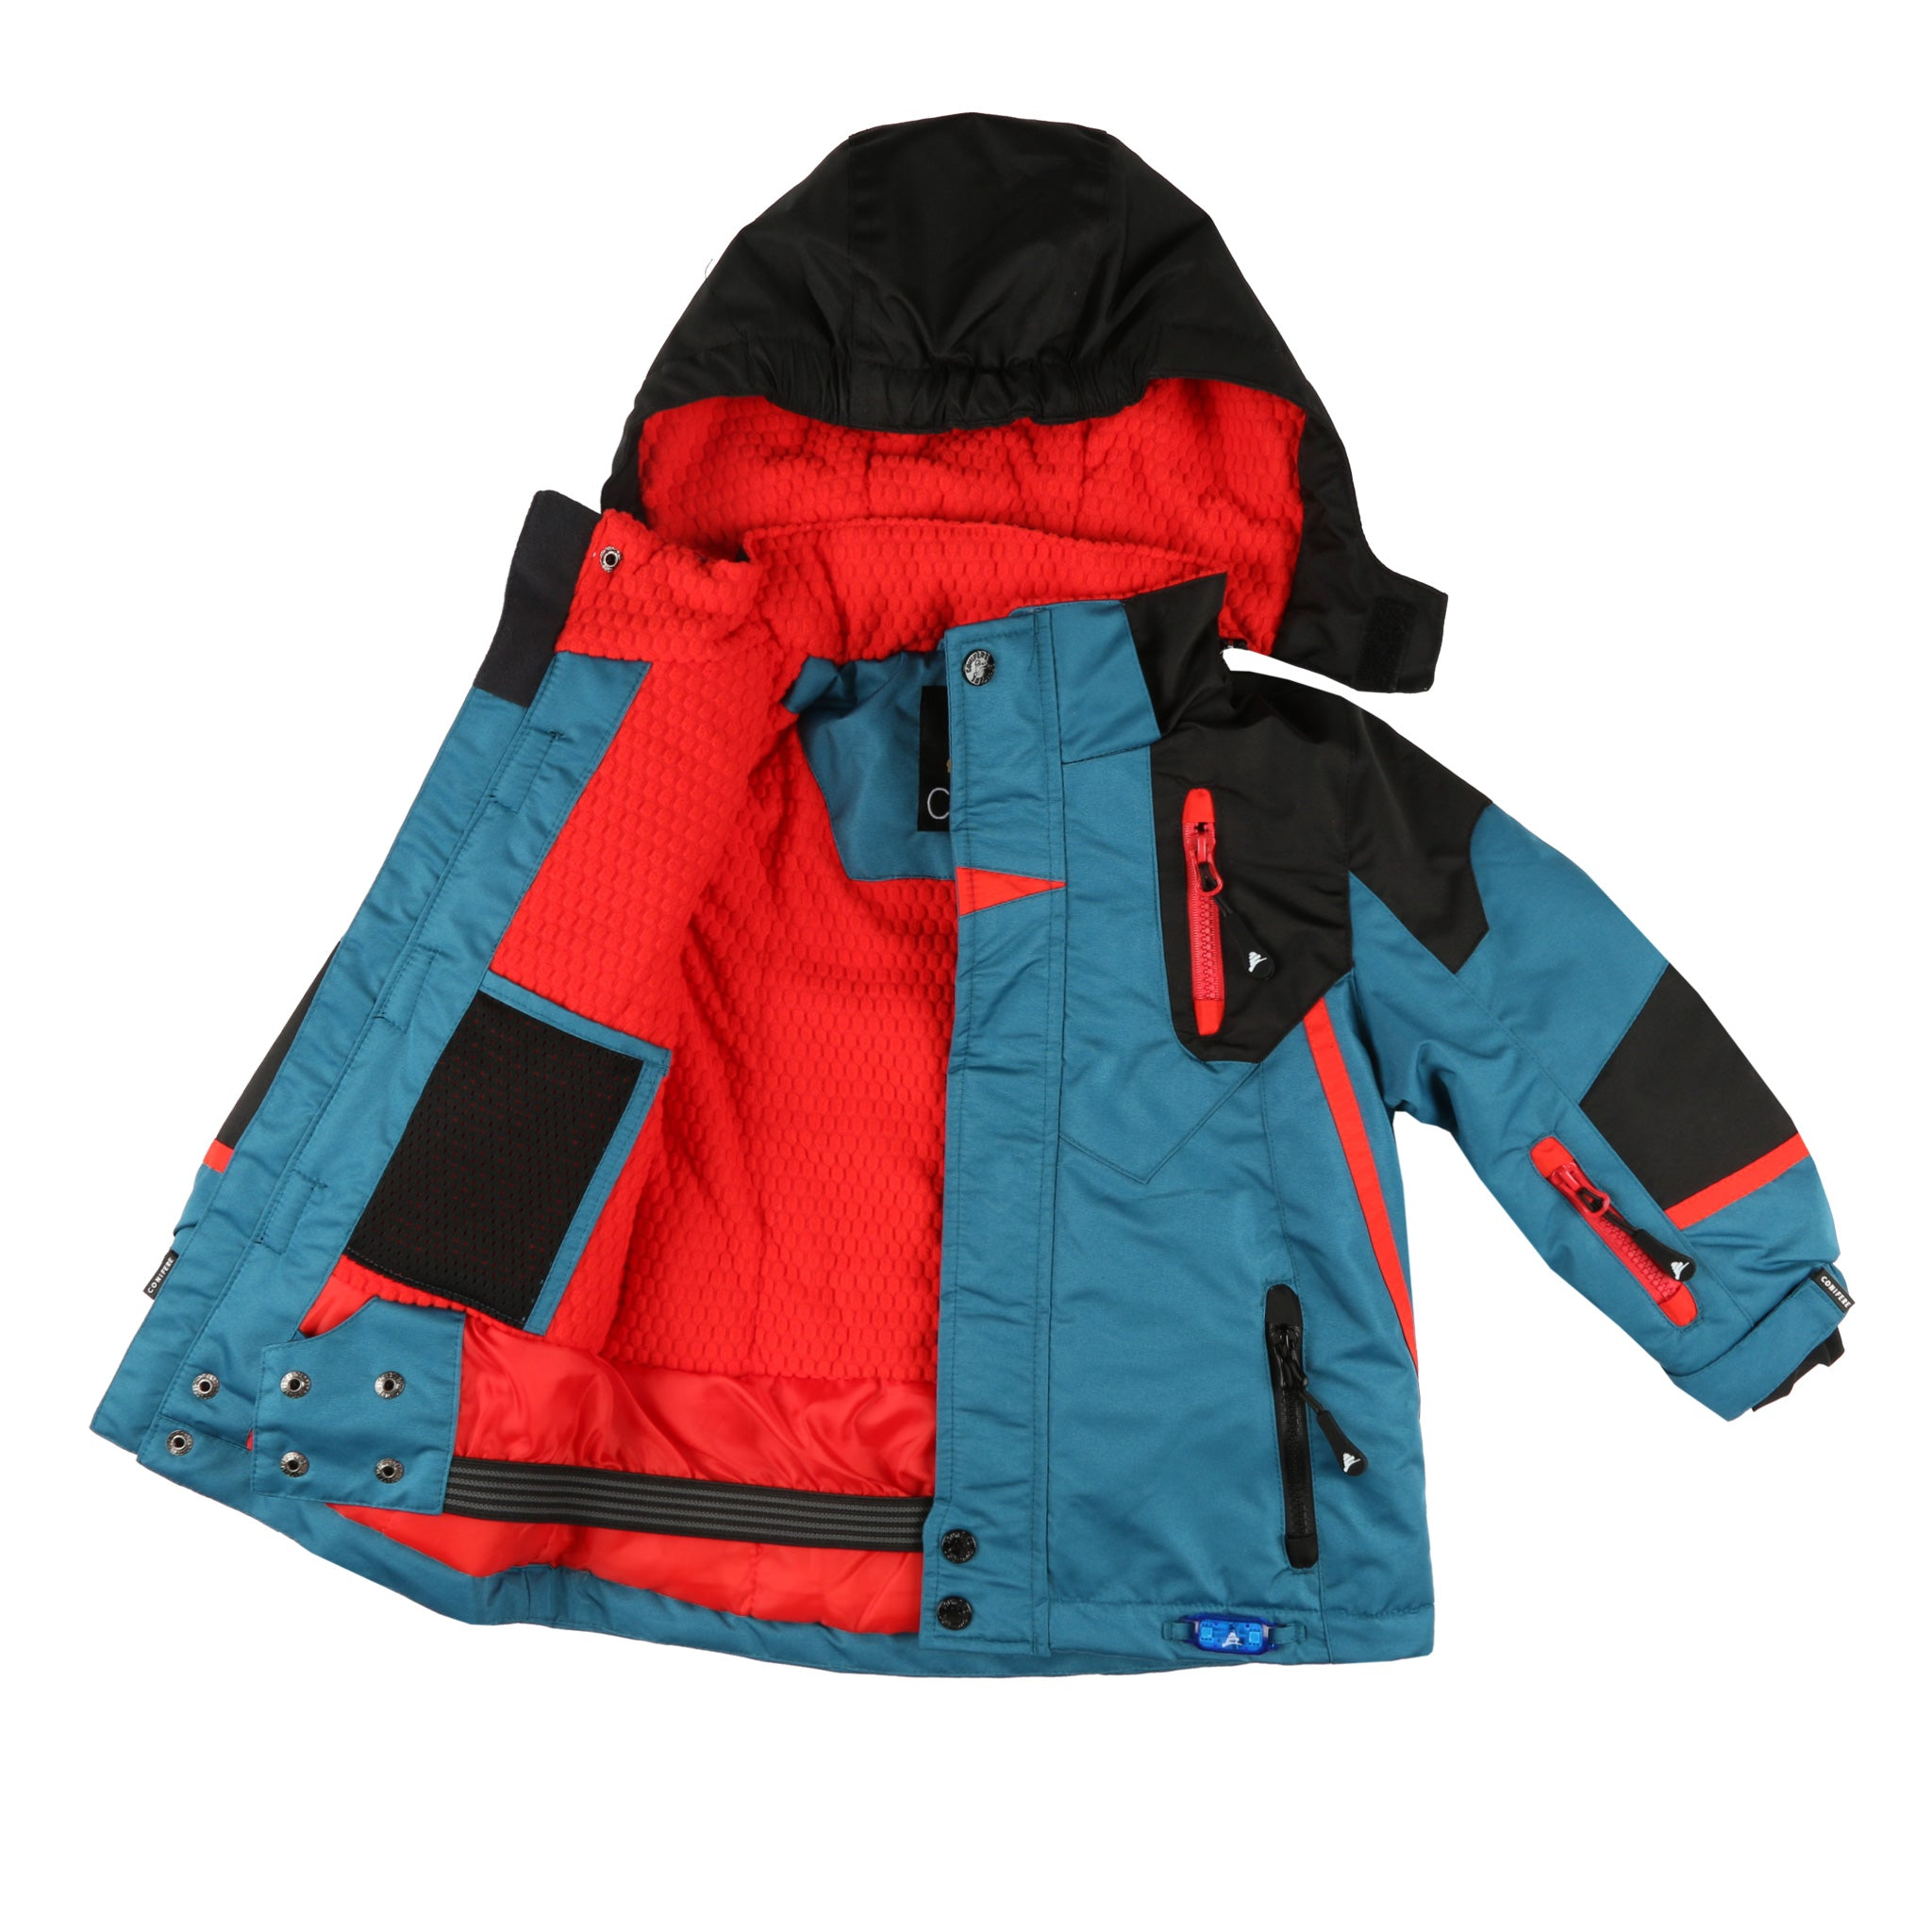 c97fba49e Infant & Toddler Boy's Snowsuit Set - Conifere